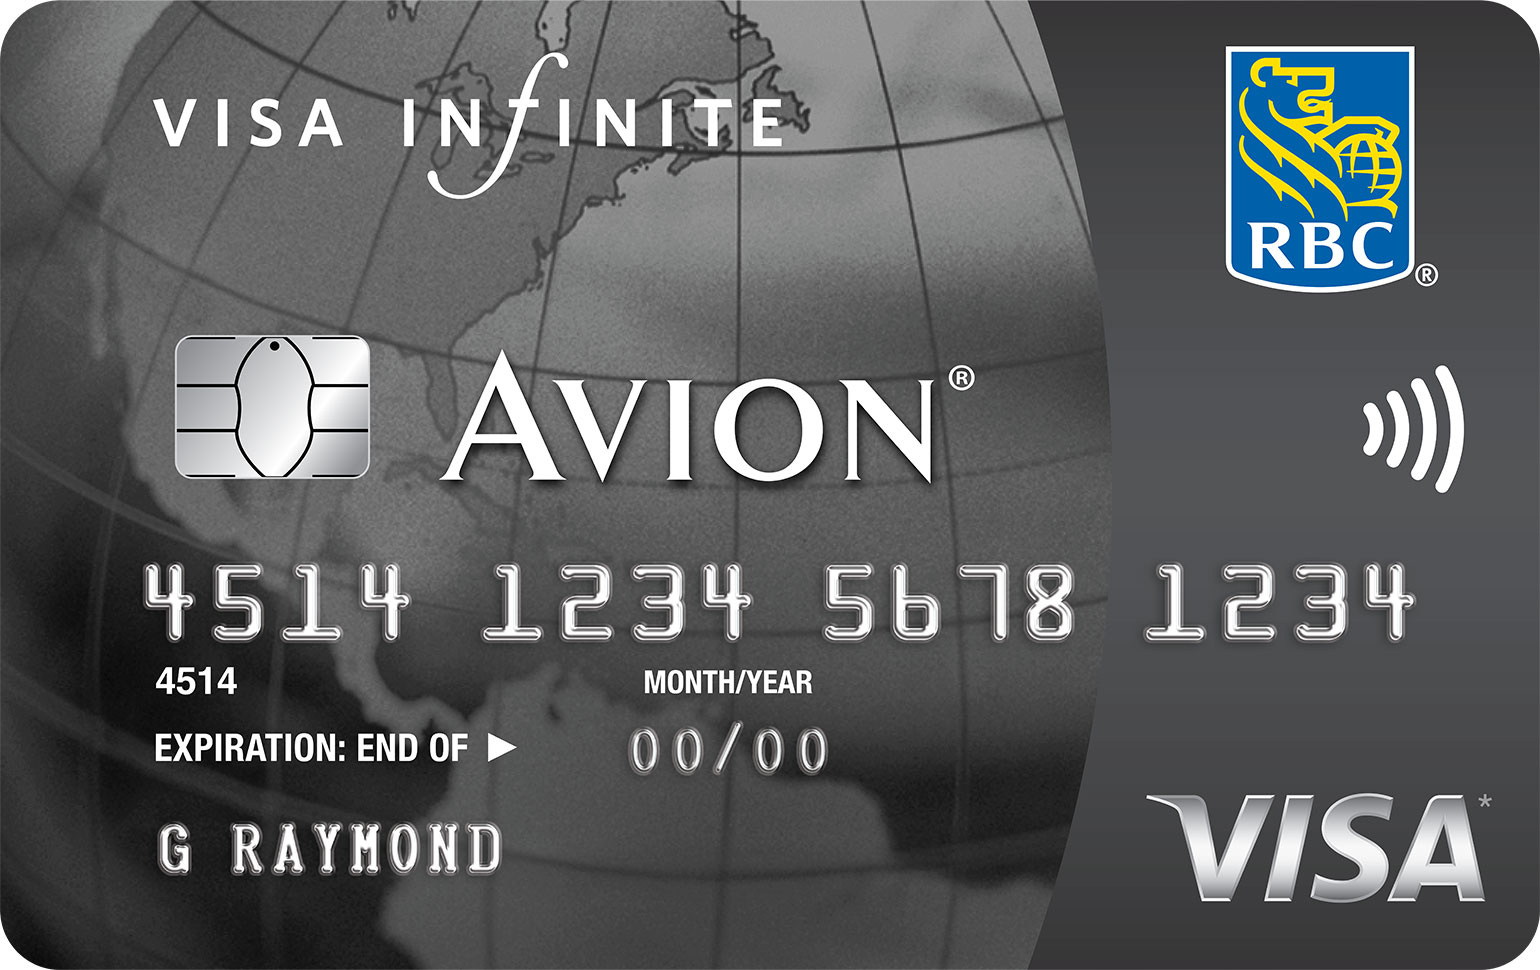 RBC® Visa Infinite‡ Avion® Card